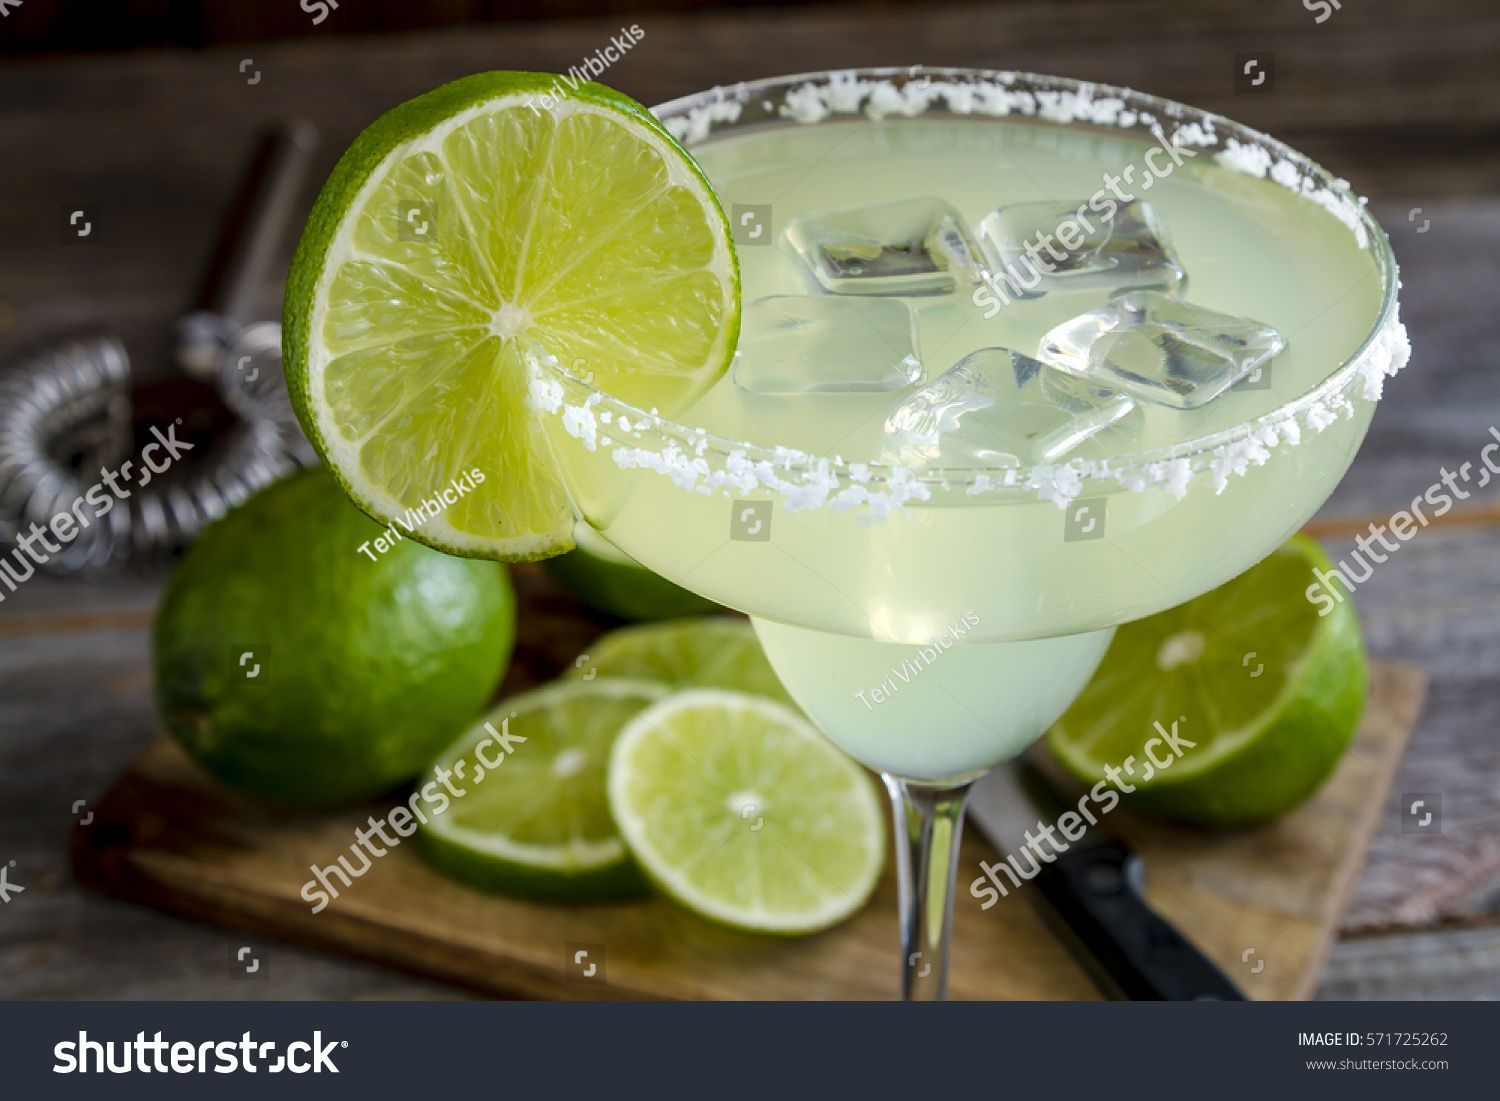 Classic lime margarita cocktail with sliced and whole limes sitting on wooden cutting board #Sponsored , #AFFILIATE, #cocktail#sliced#margarita#Classic #limemargarita Classic lime margarita cocktail with sliced and whole limes sitting on wooden cutting board #Sponsored , #AFFILIATE, #cocktail#sliced#margarita#Classic #limemargarita